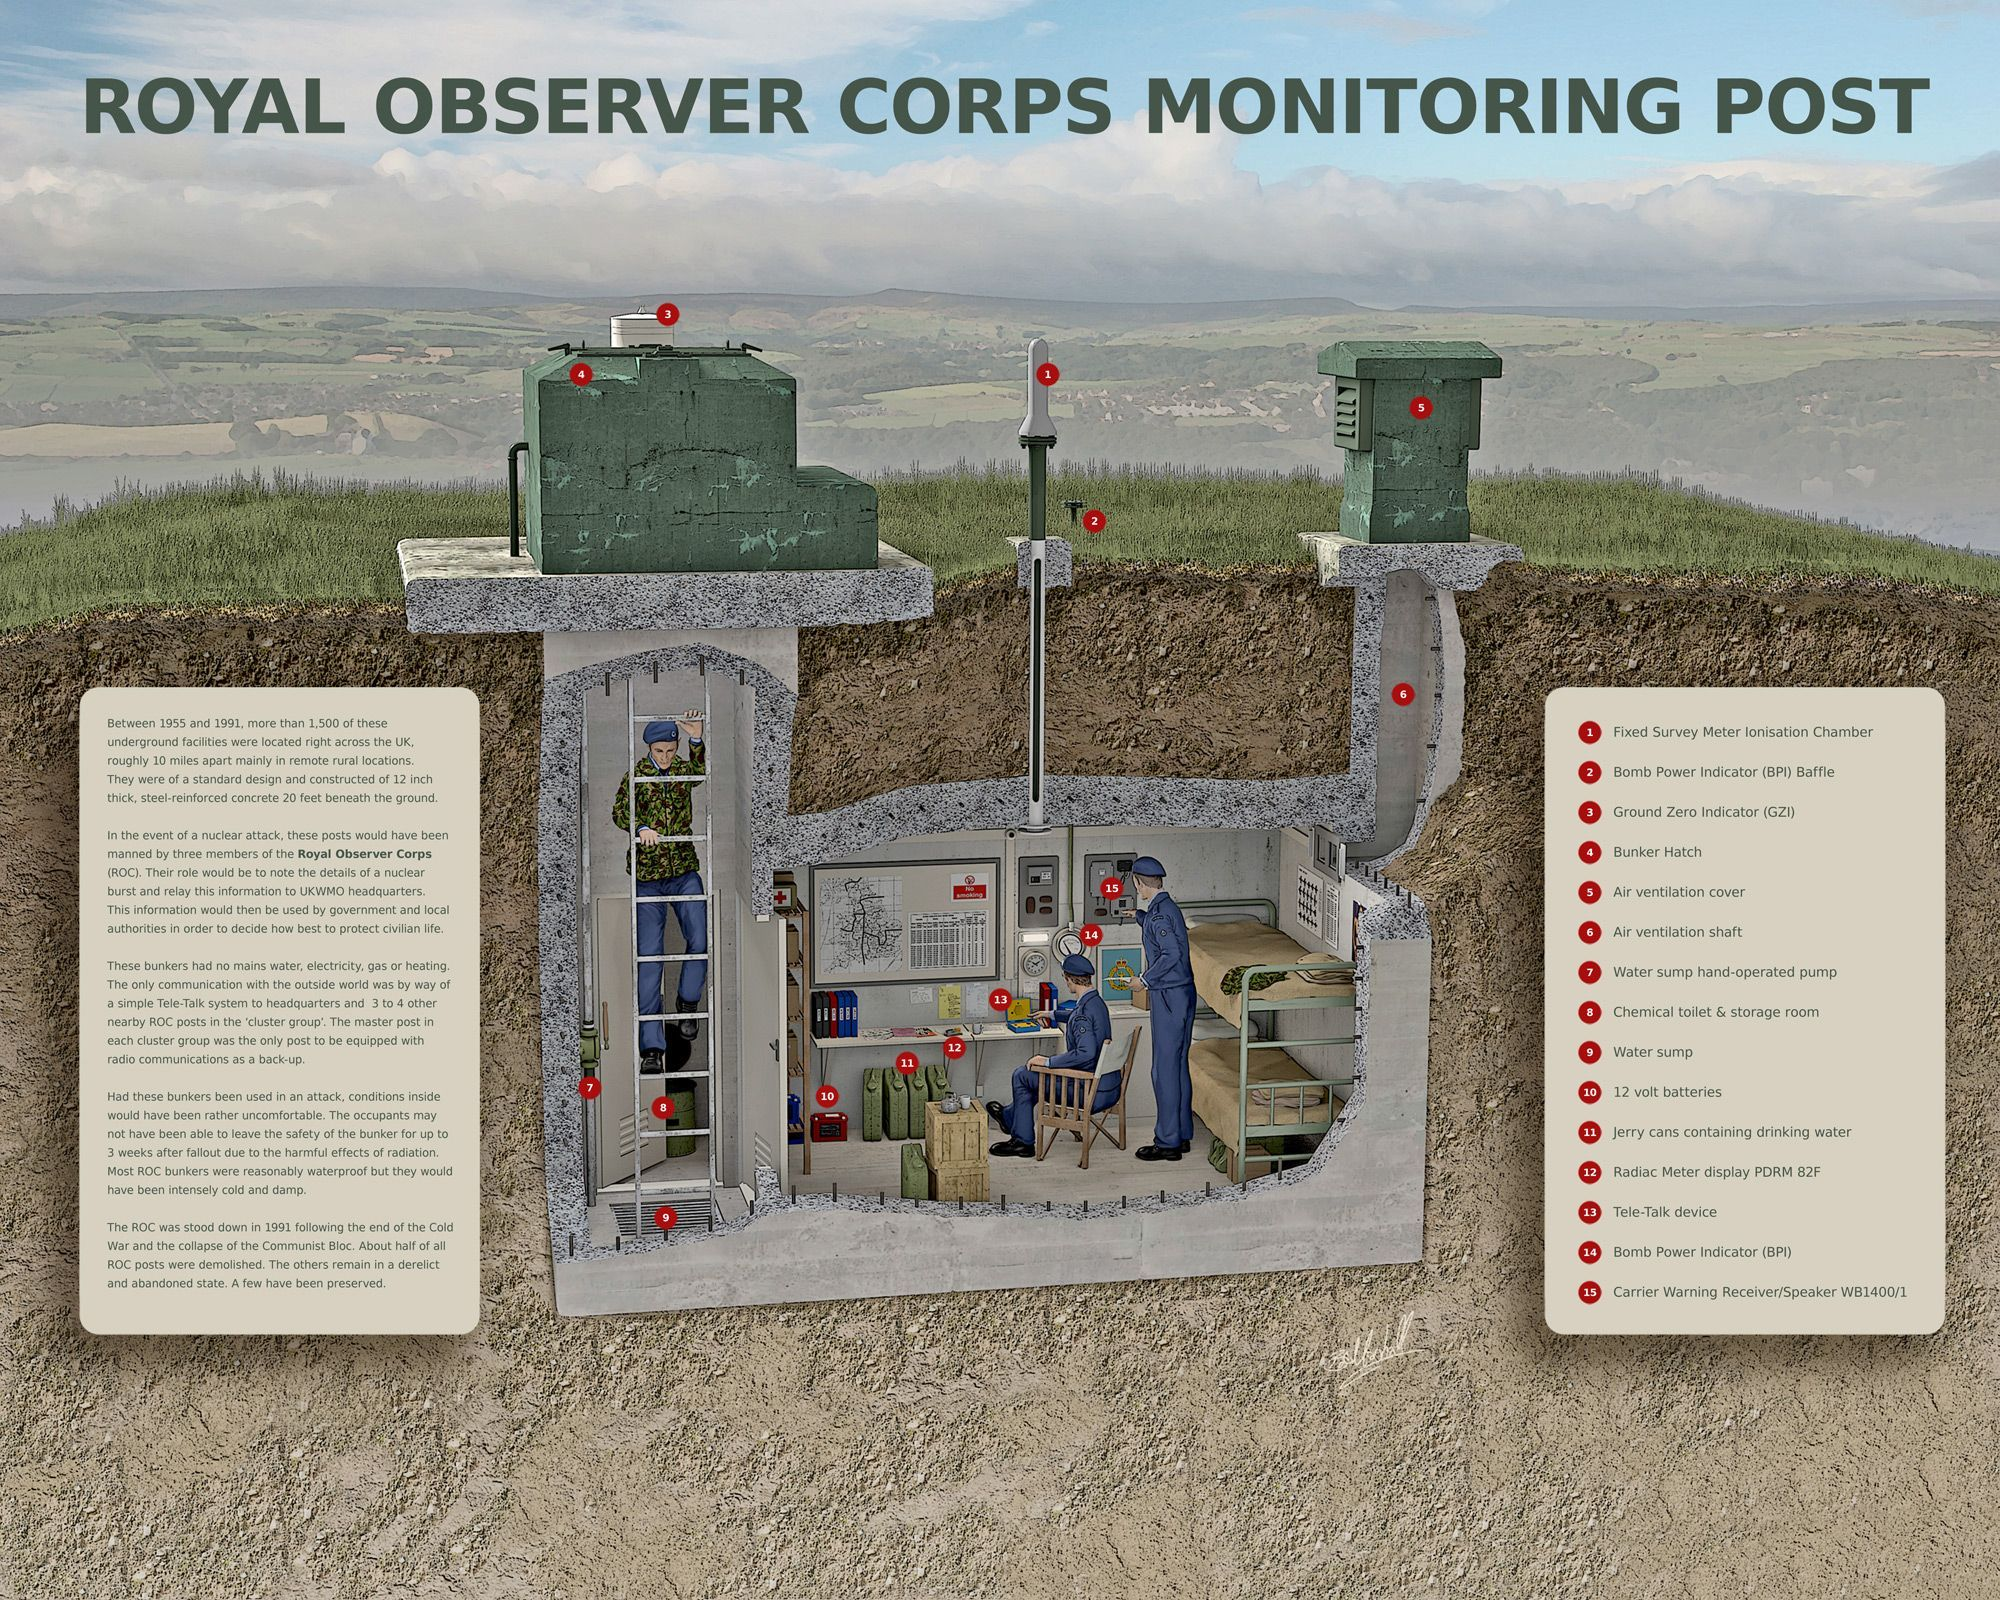 Cutaway Illustration Showing The Interior Of A Typical Royal Wiringlight On Loft Lighting Diydoctor Org Uk Diy And Home Improvement Observer Corps Underground Nuclear Monitoring Post Or